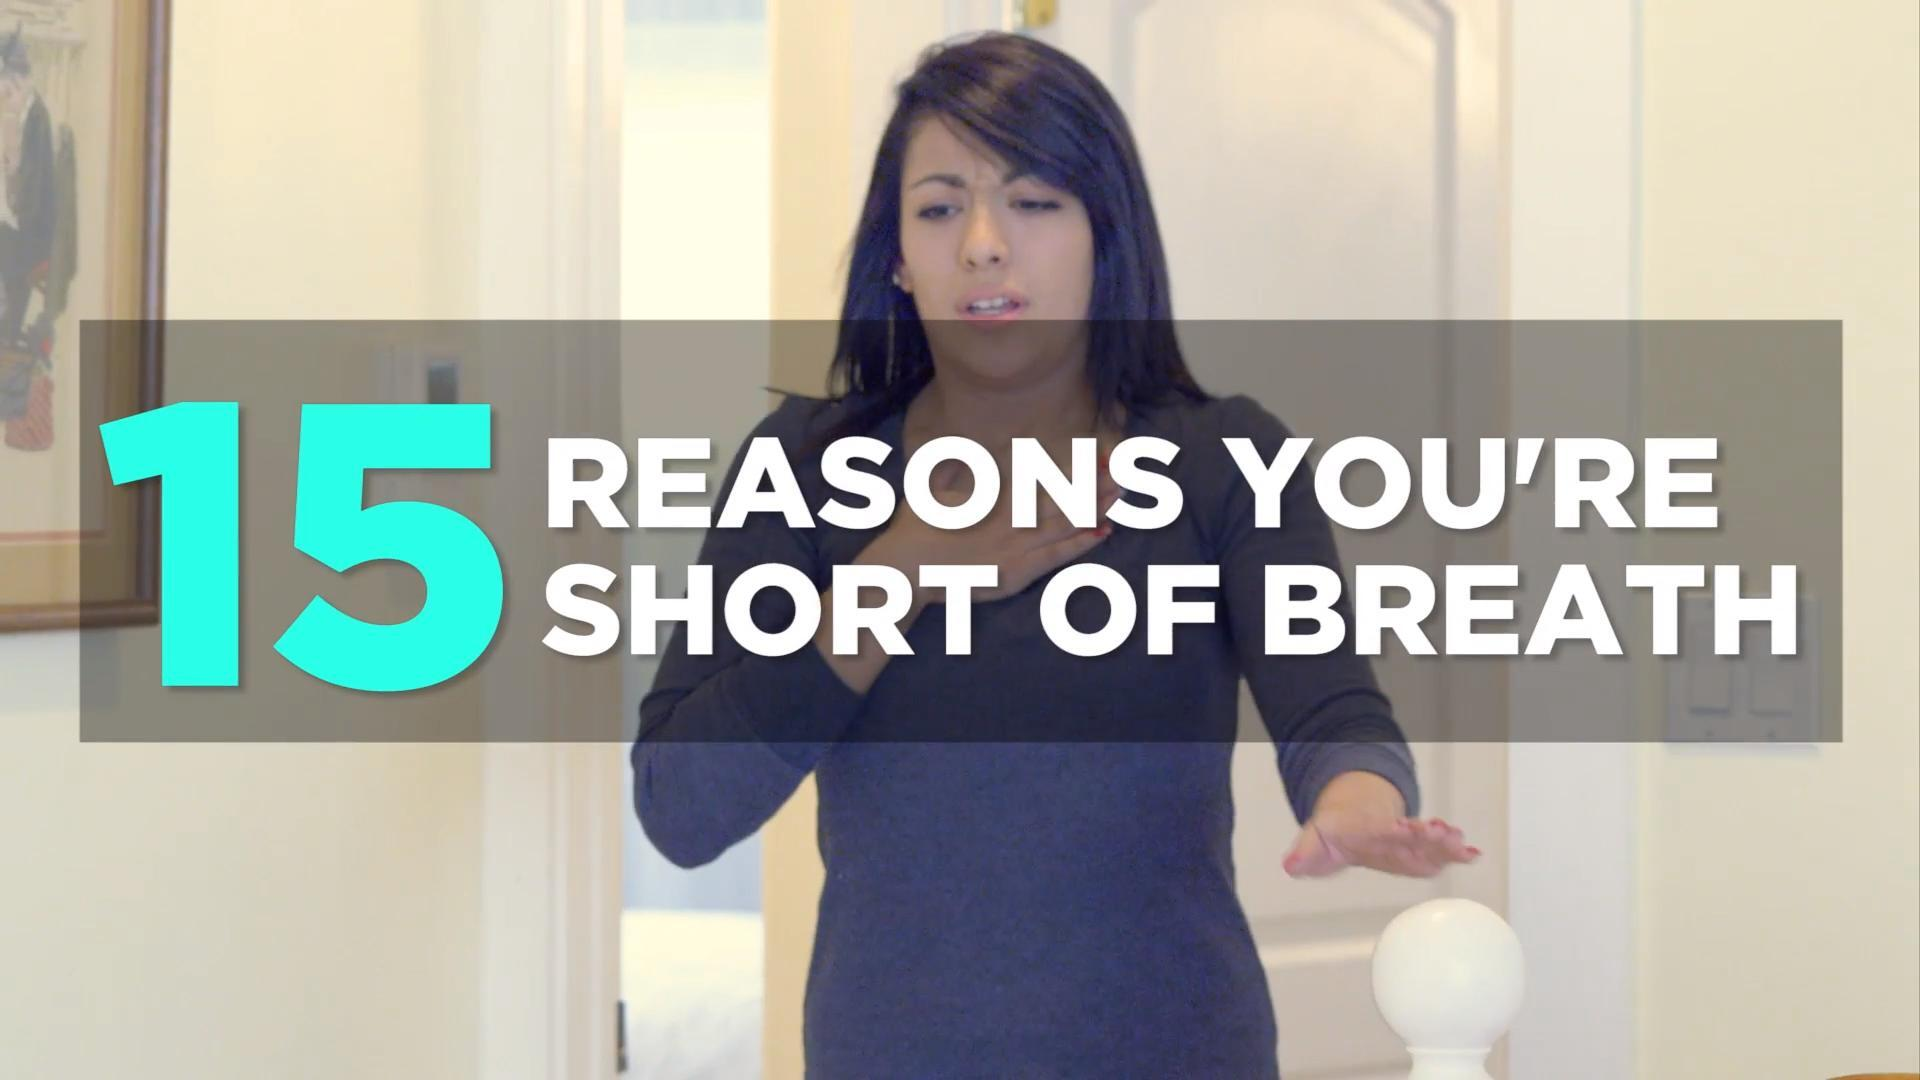 What causes shortness of breath?